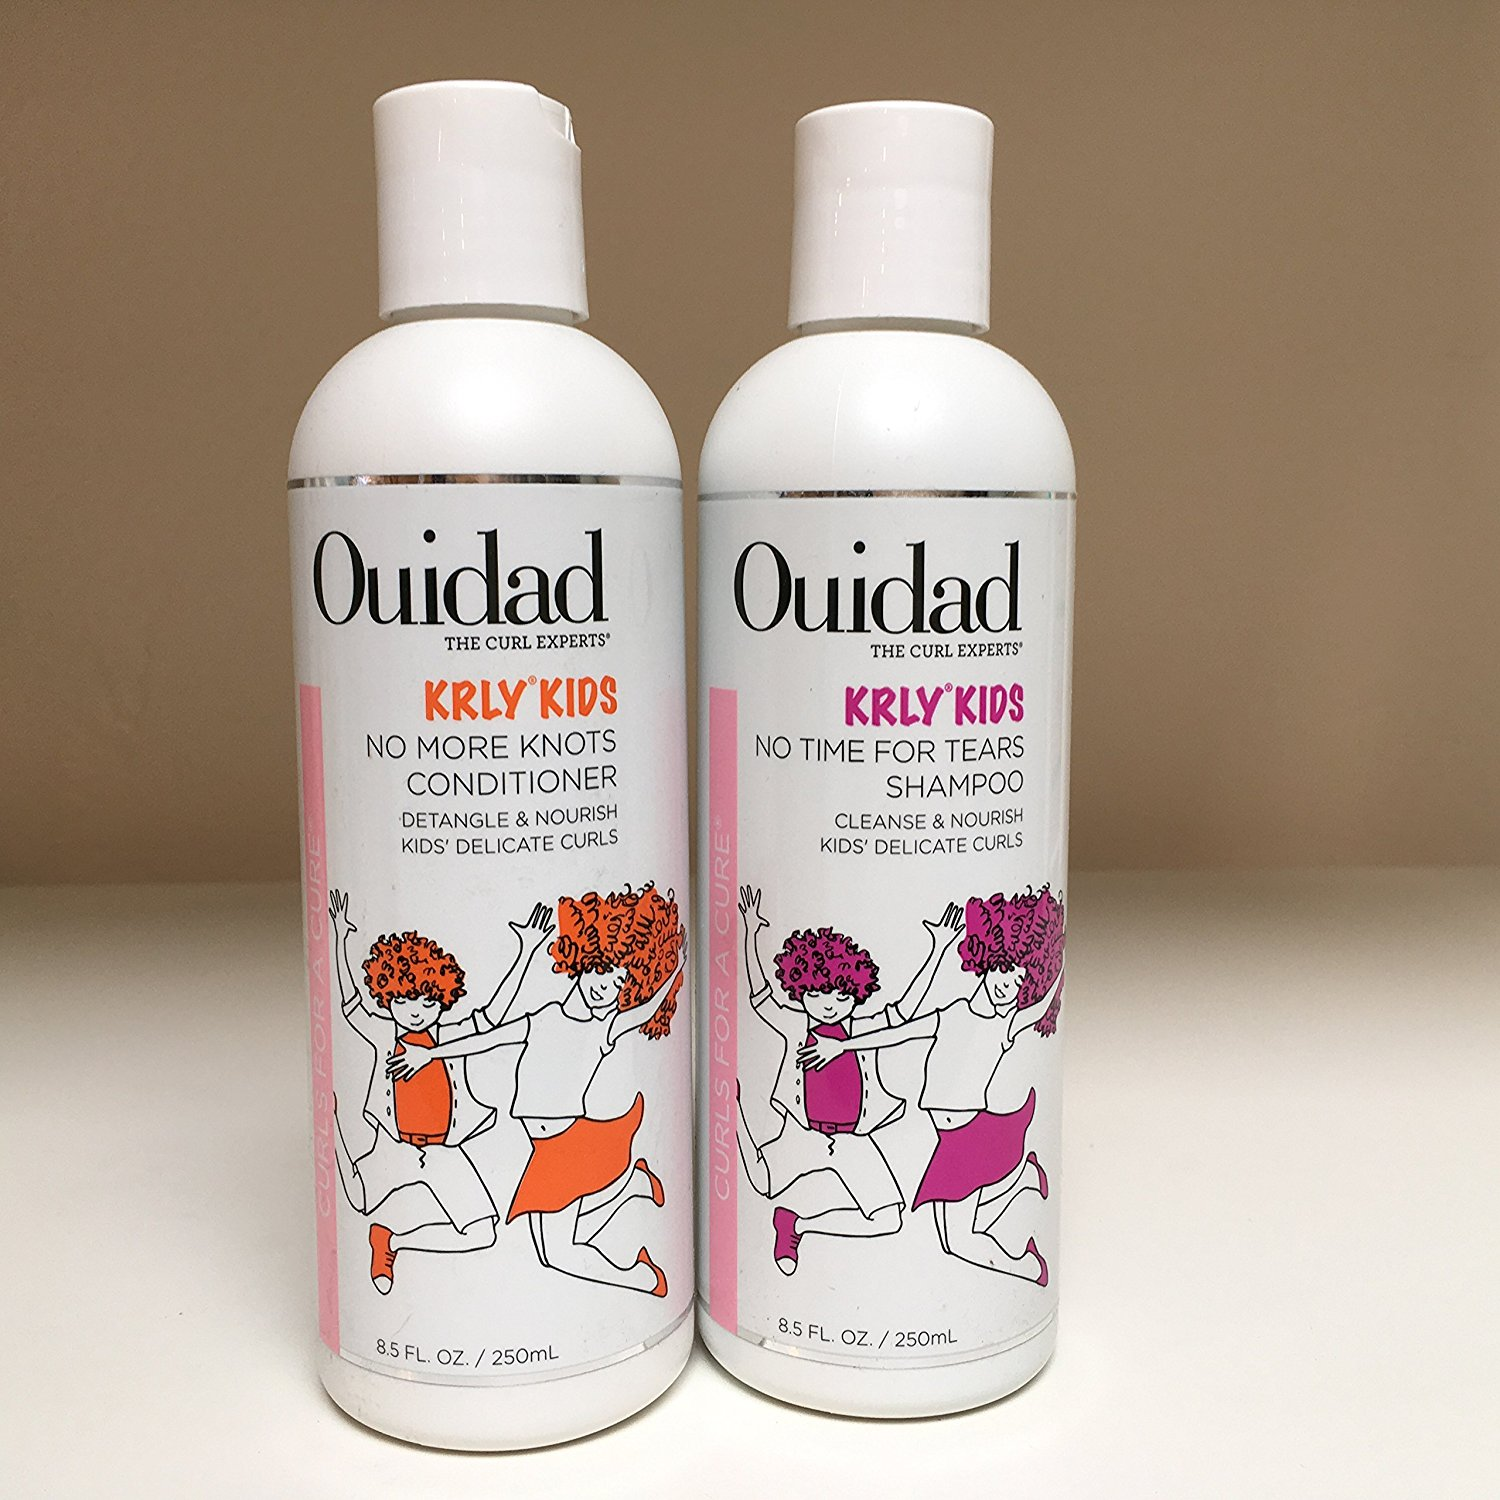 Ouidad KRLY KIDS No Time for Tears Shampoo & No More Knots Conditioner 8.5oz DUO SET